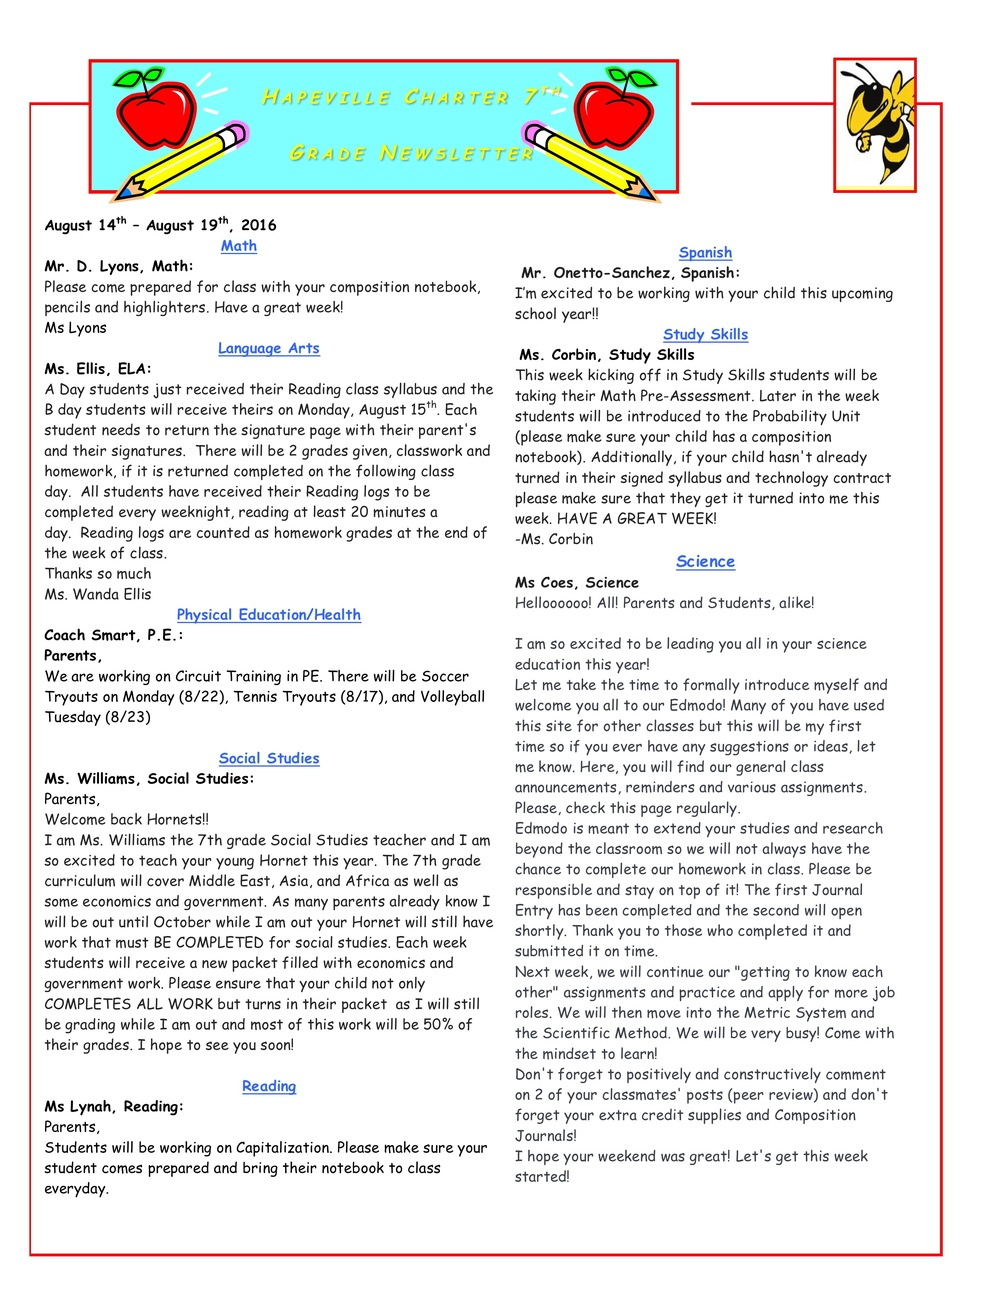 Newsletter Image7th Grade Newsletter 8.15.2016.jpeg